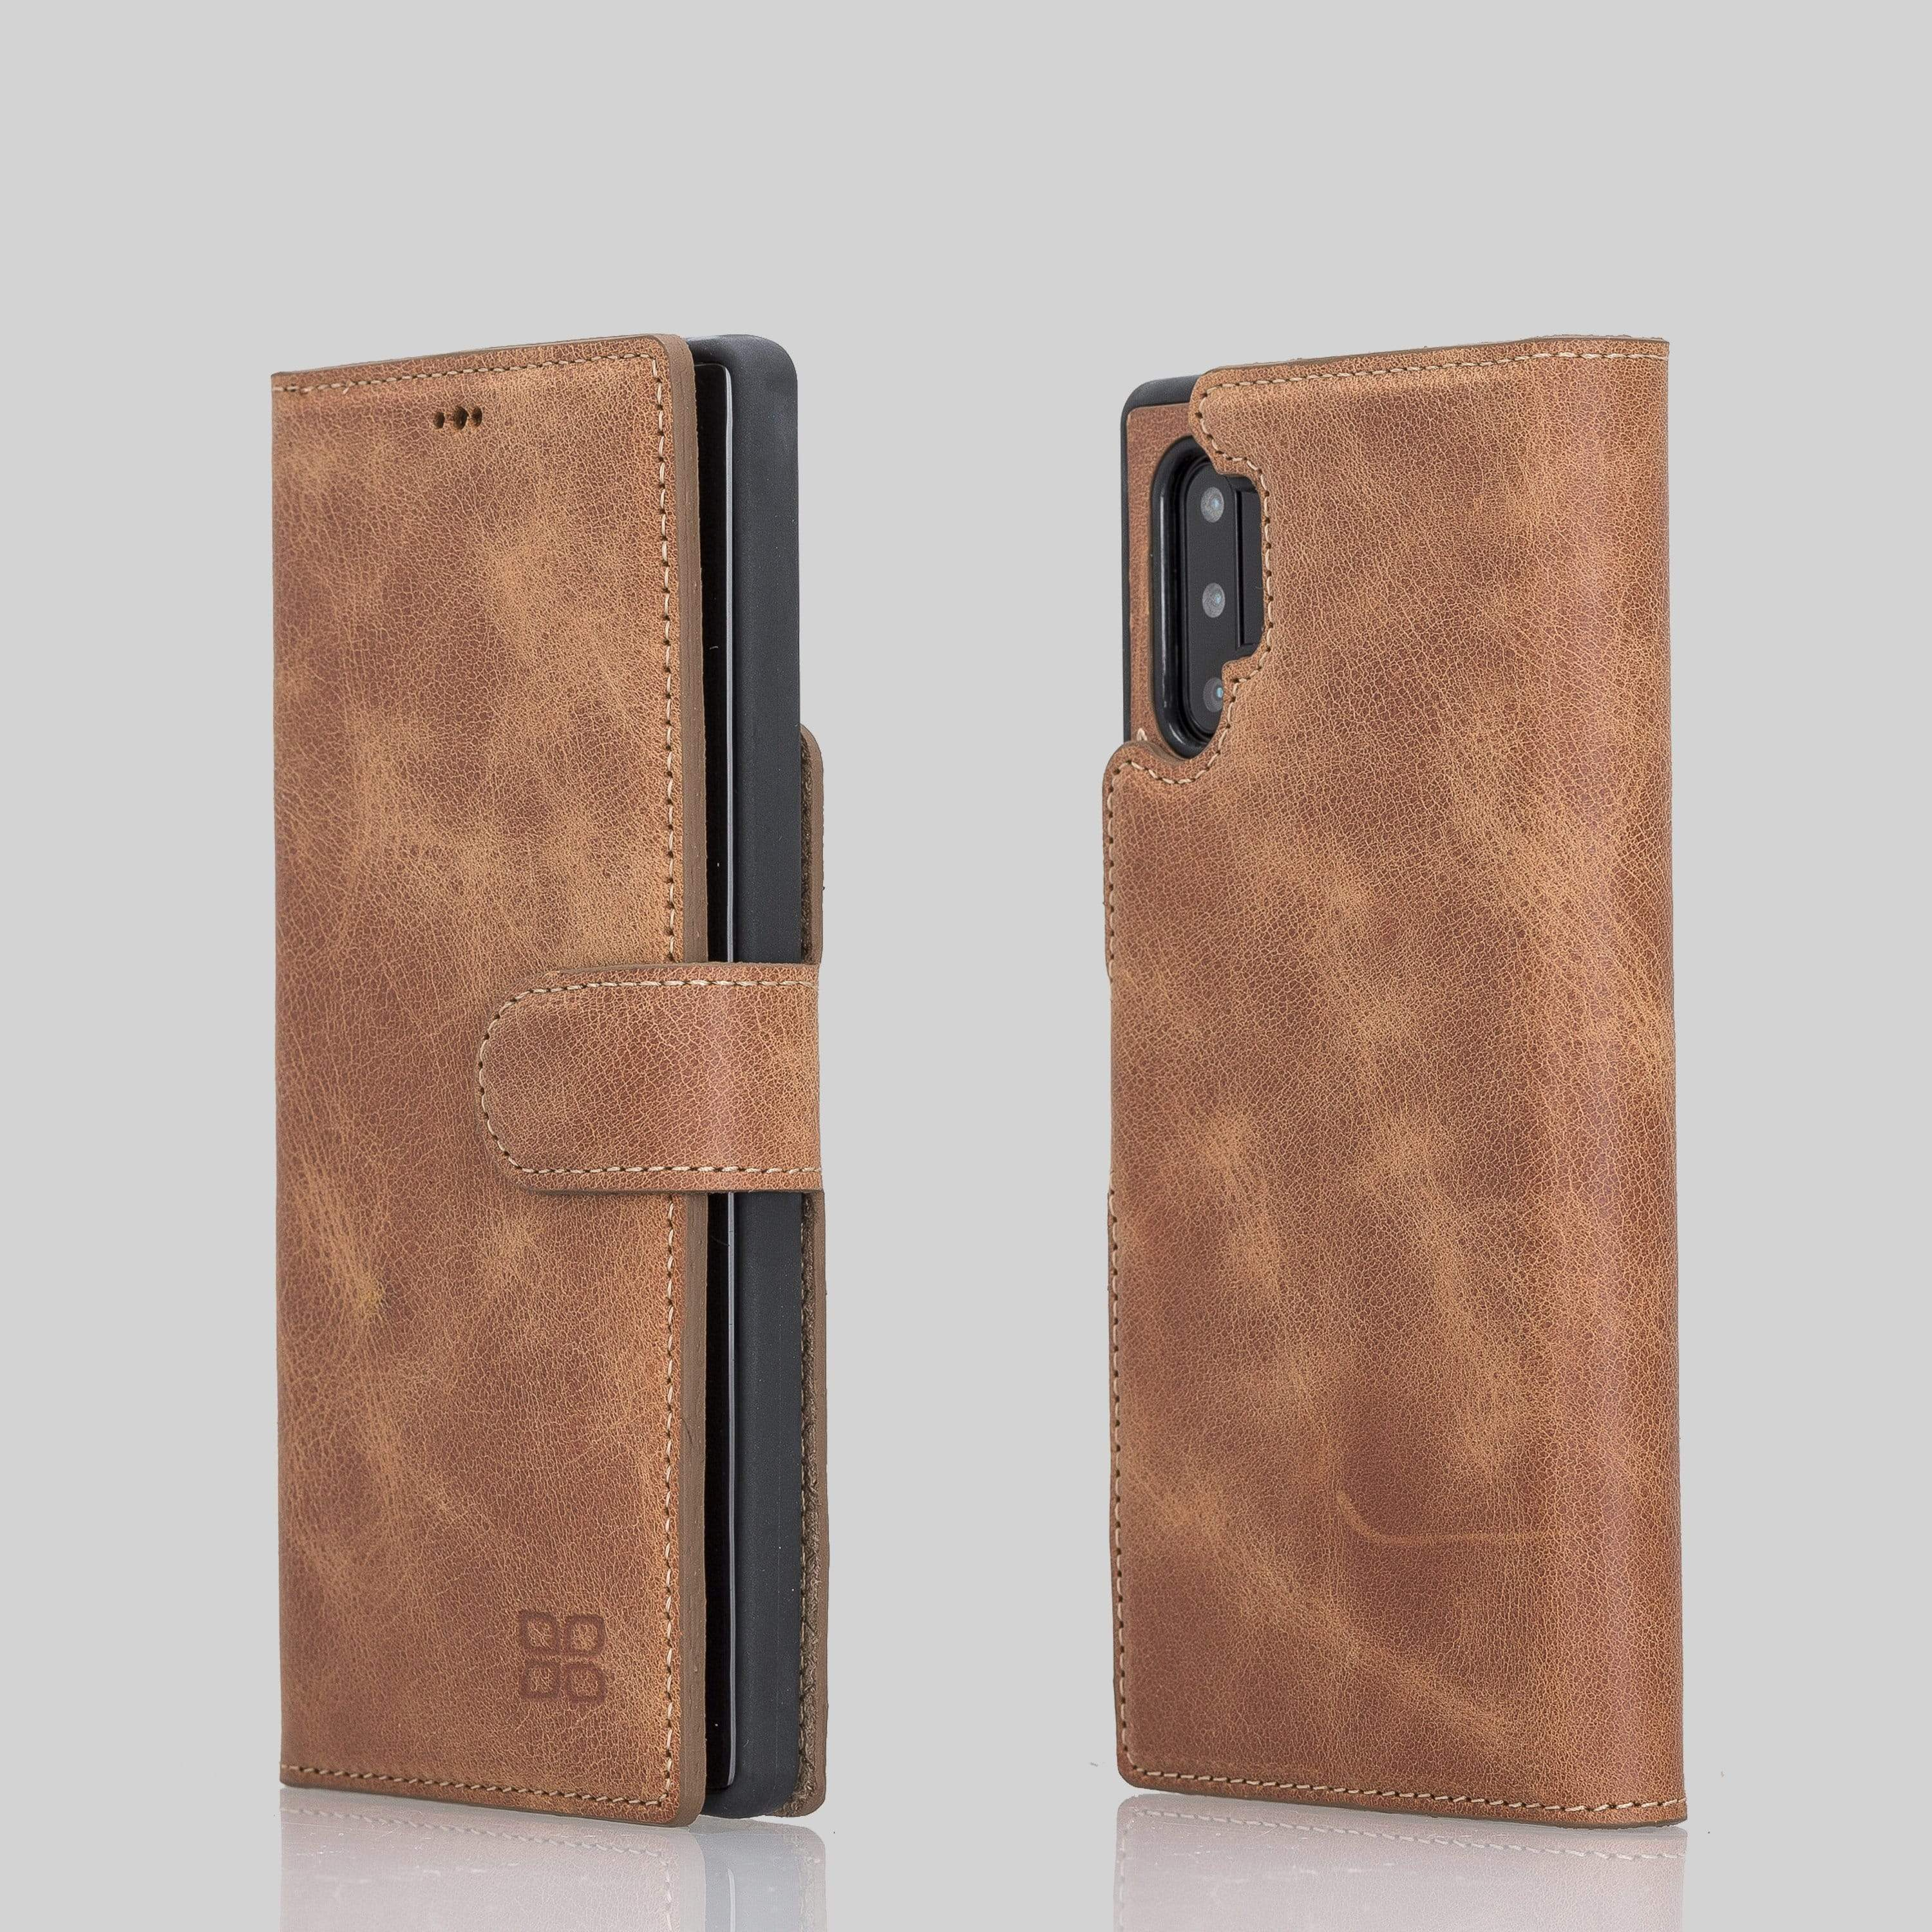 Phone Case Magnetic Detachable Leather Wallet Case with RFID Blocker for Samsung Note 10 Plus - Antic Brown Bouletta Shop